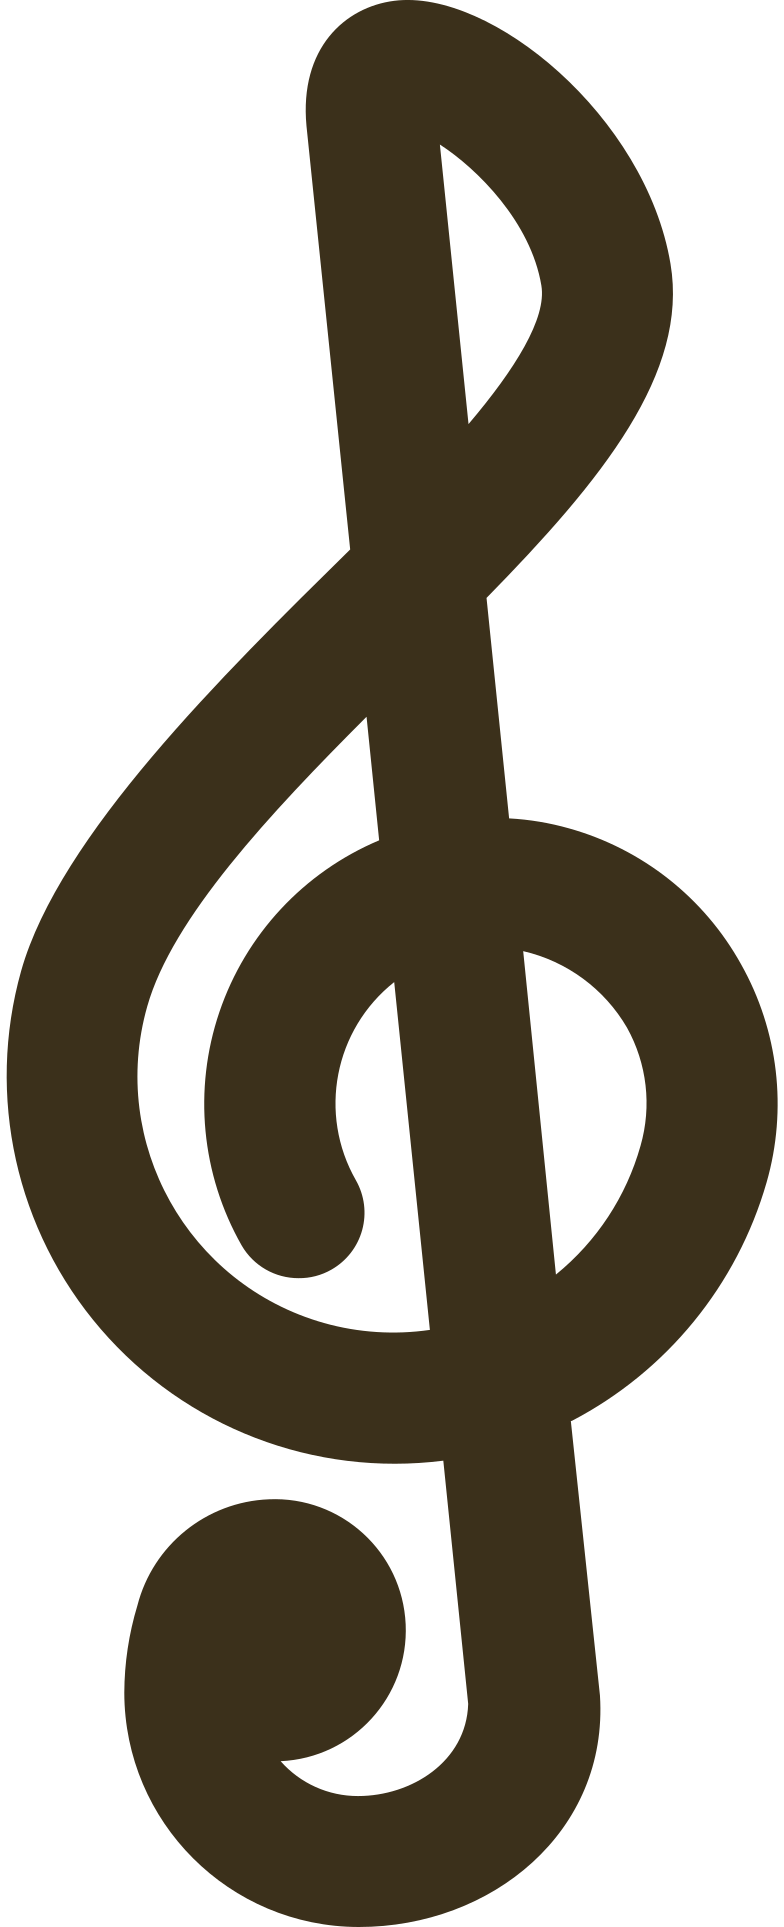 style music note clef Vector images in PNG and SVG | Icons8 Illustrations